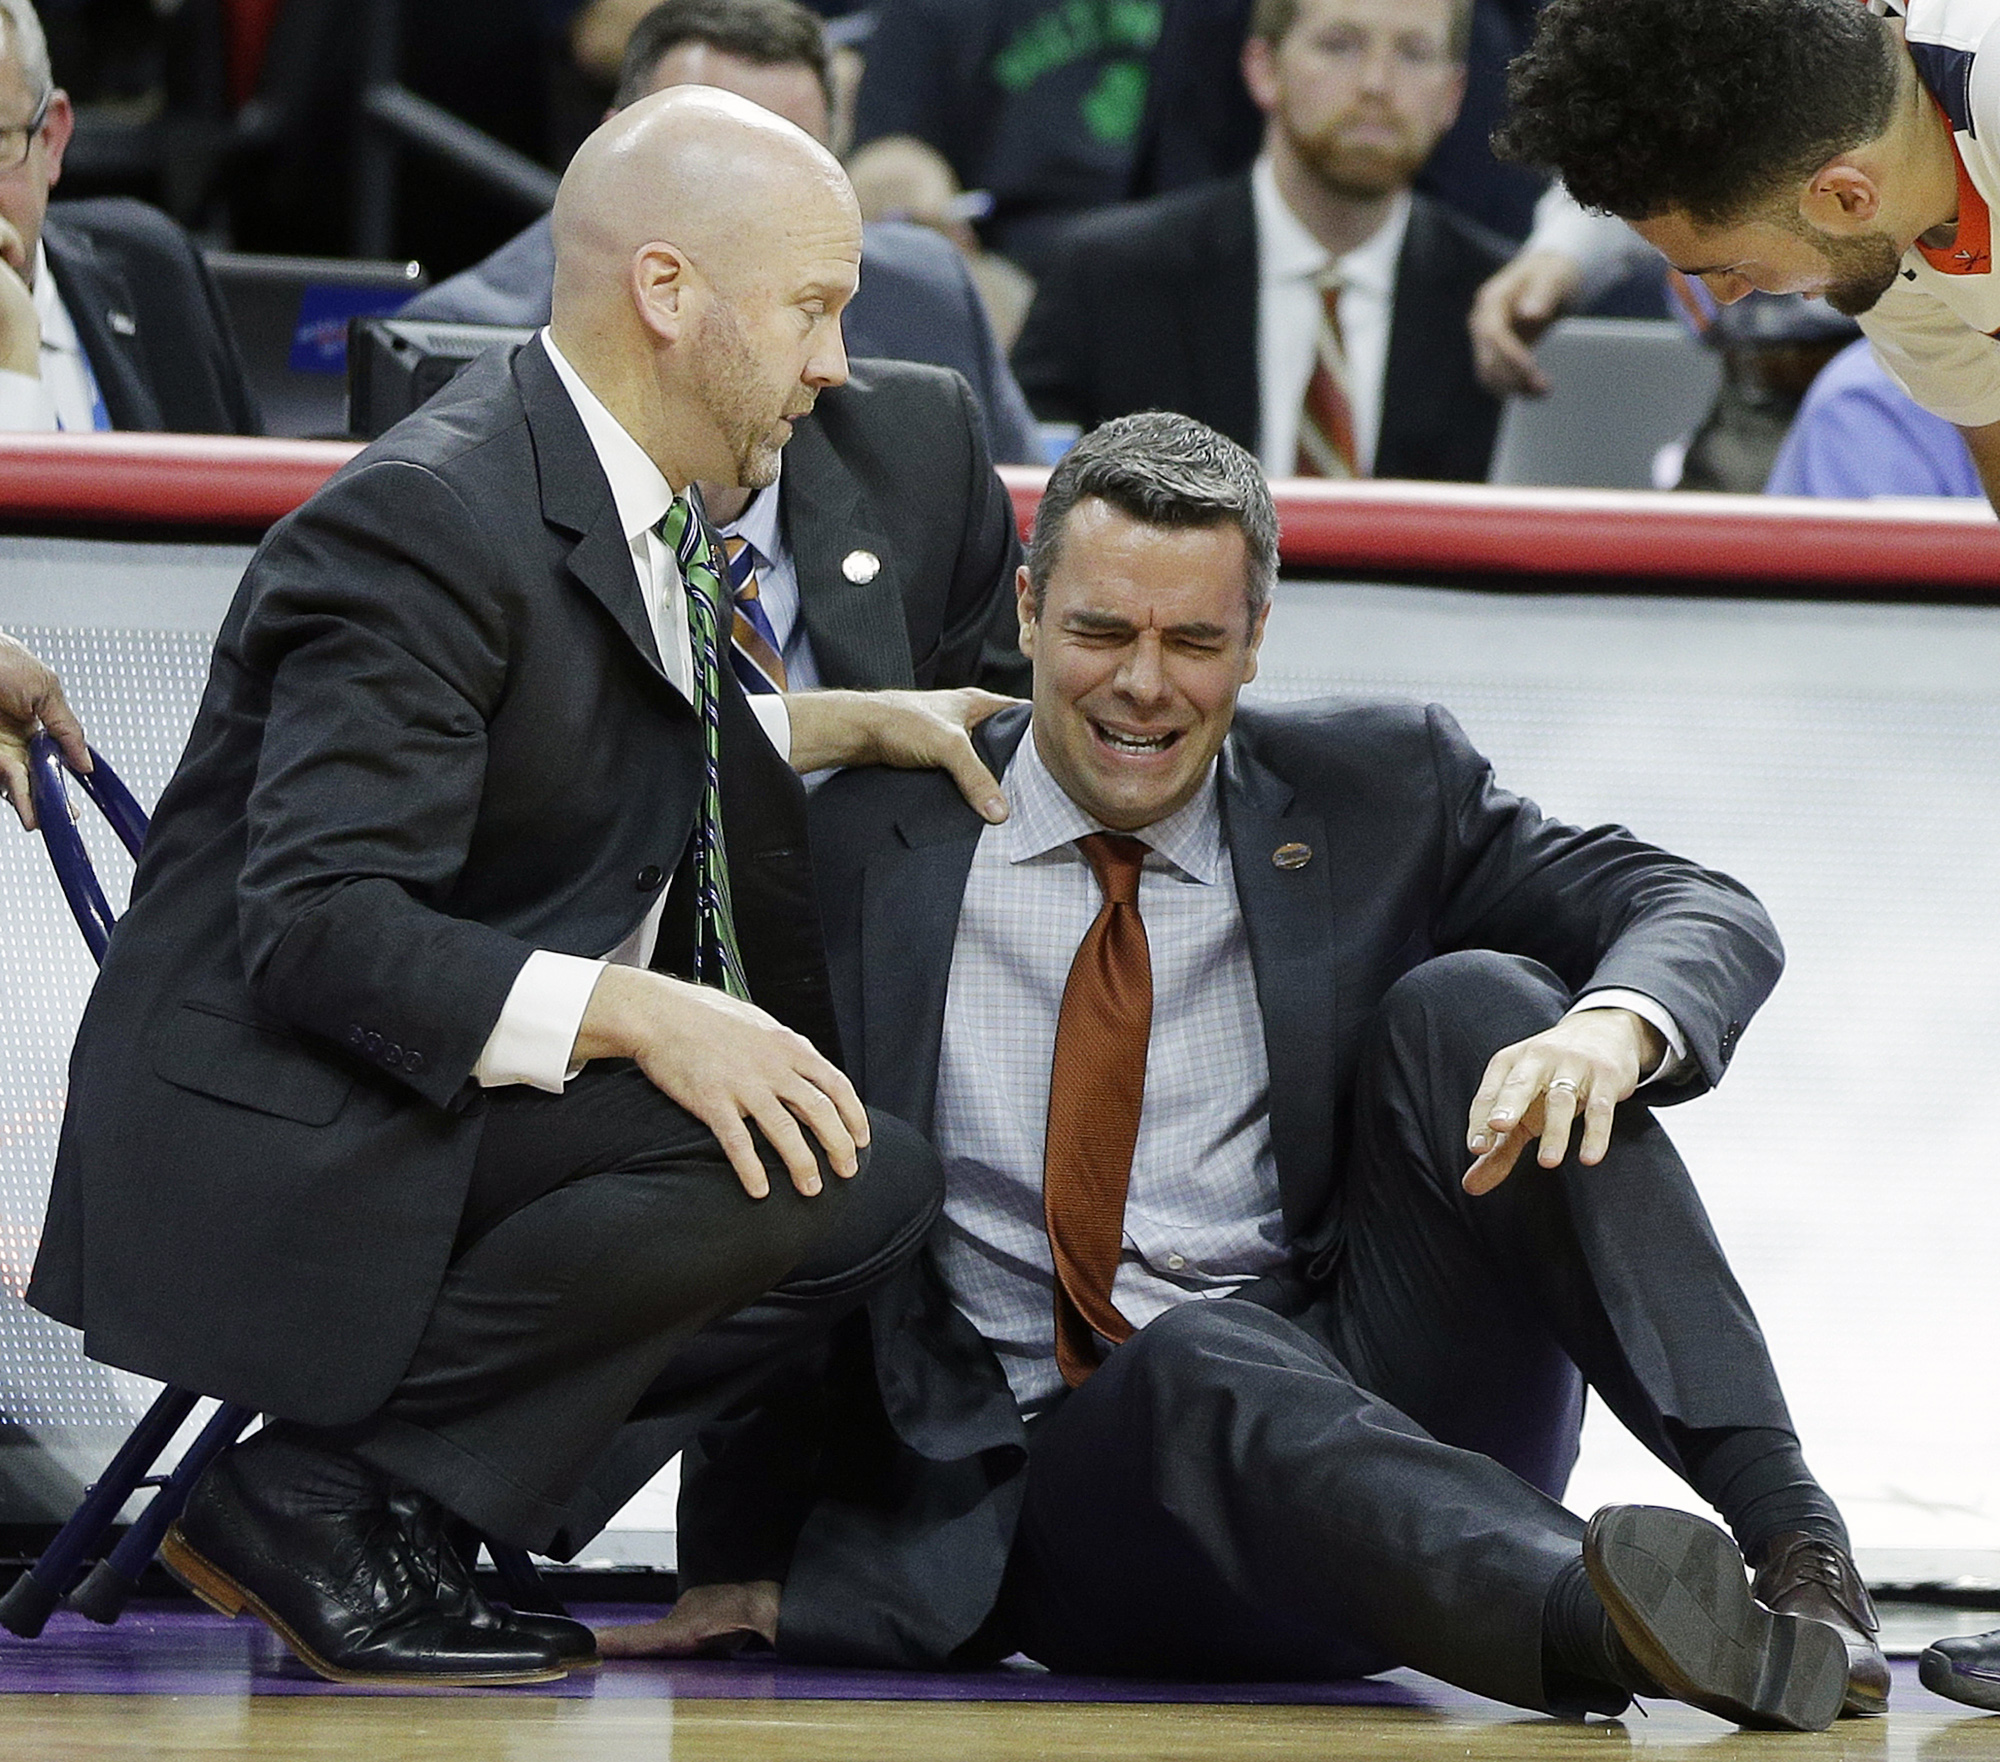 Virginia head coach Tony Bennett is attended to after Bennett collapsed during play against Hampton during the first half of a first-round men's college basketball game in the NCAA Tournament, Thursday, March 17, 2016, in Raleigh, N.C. (AP Photo/Chuck Bur